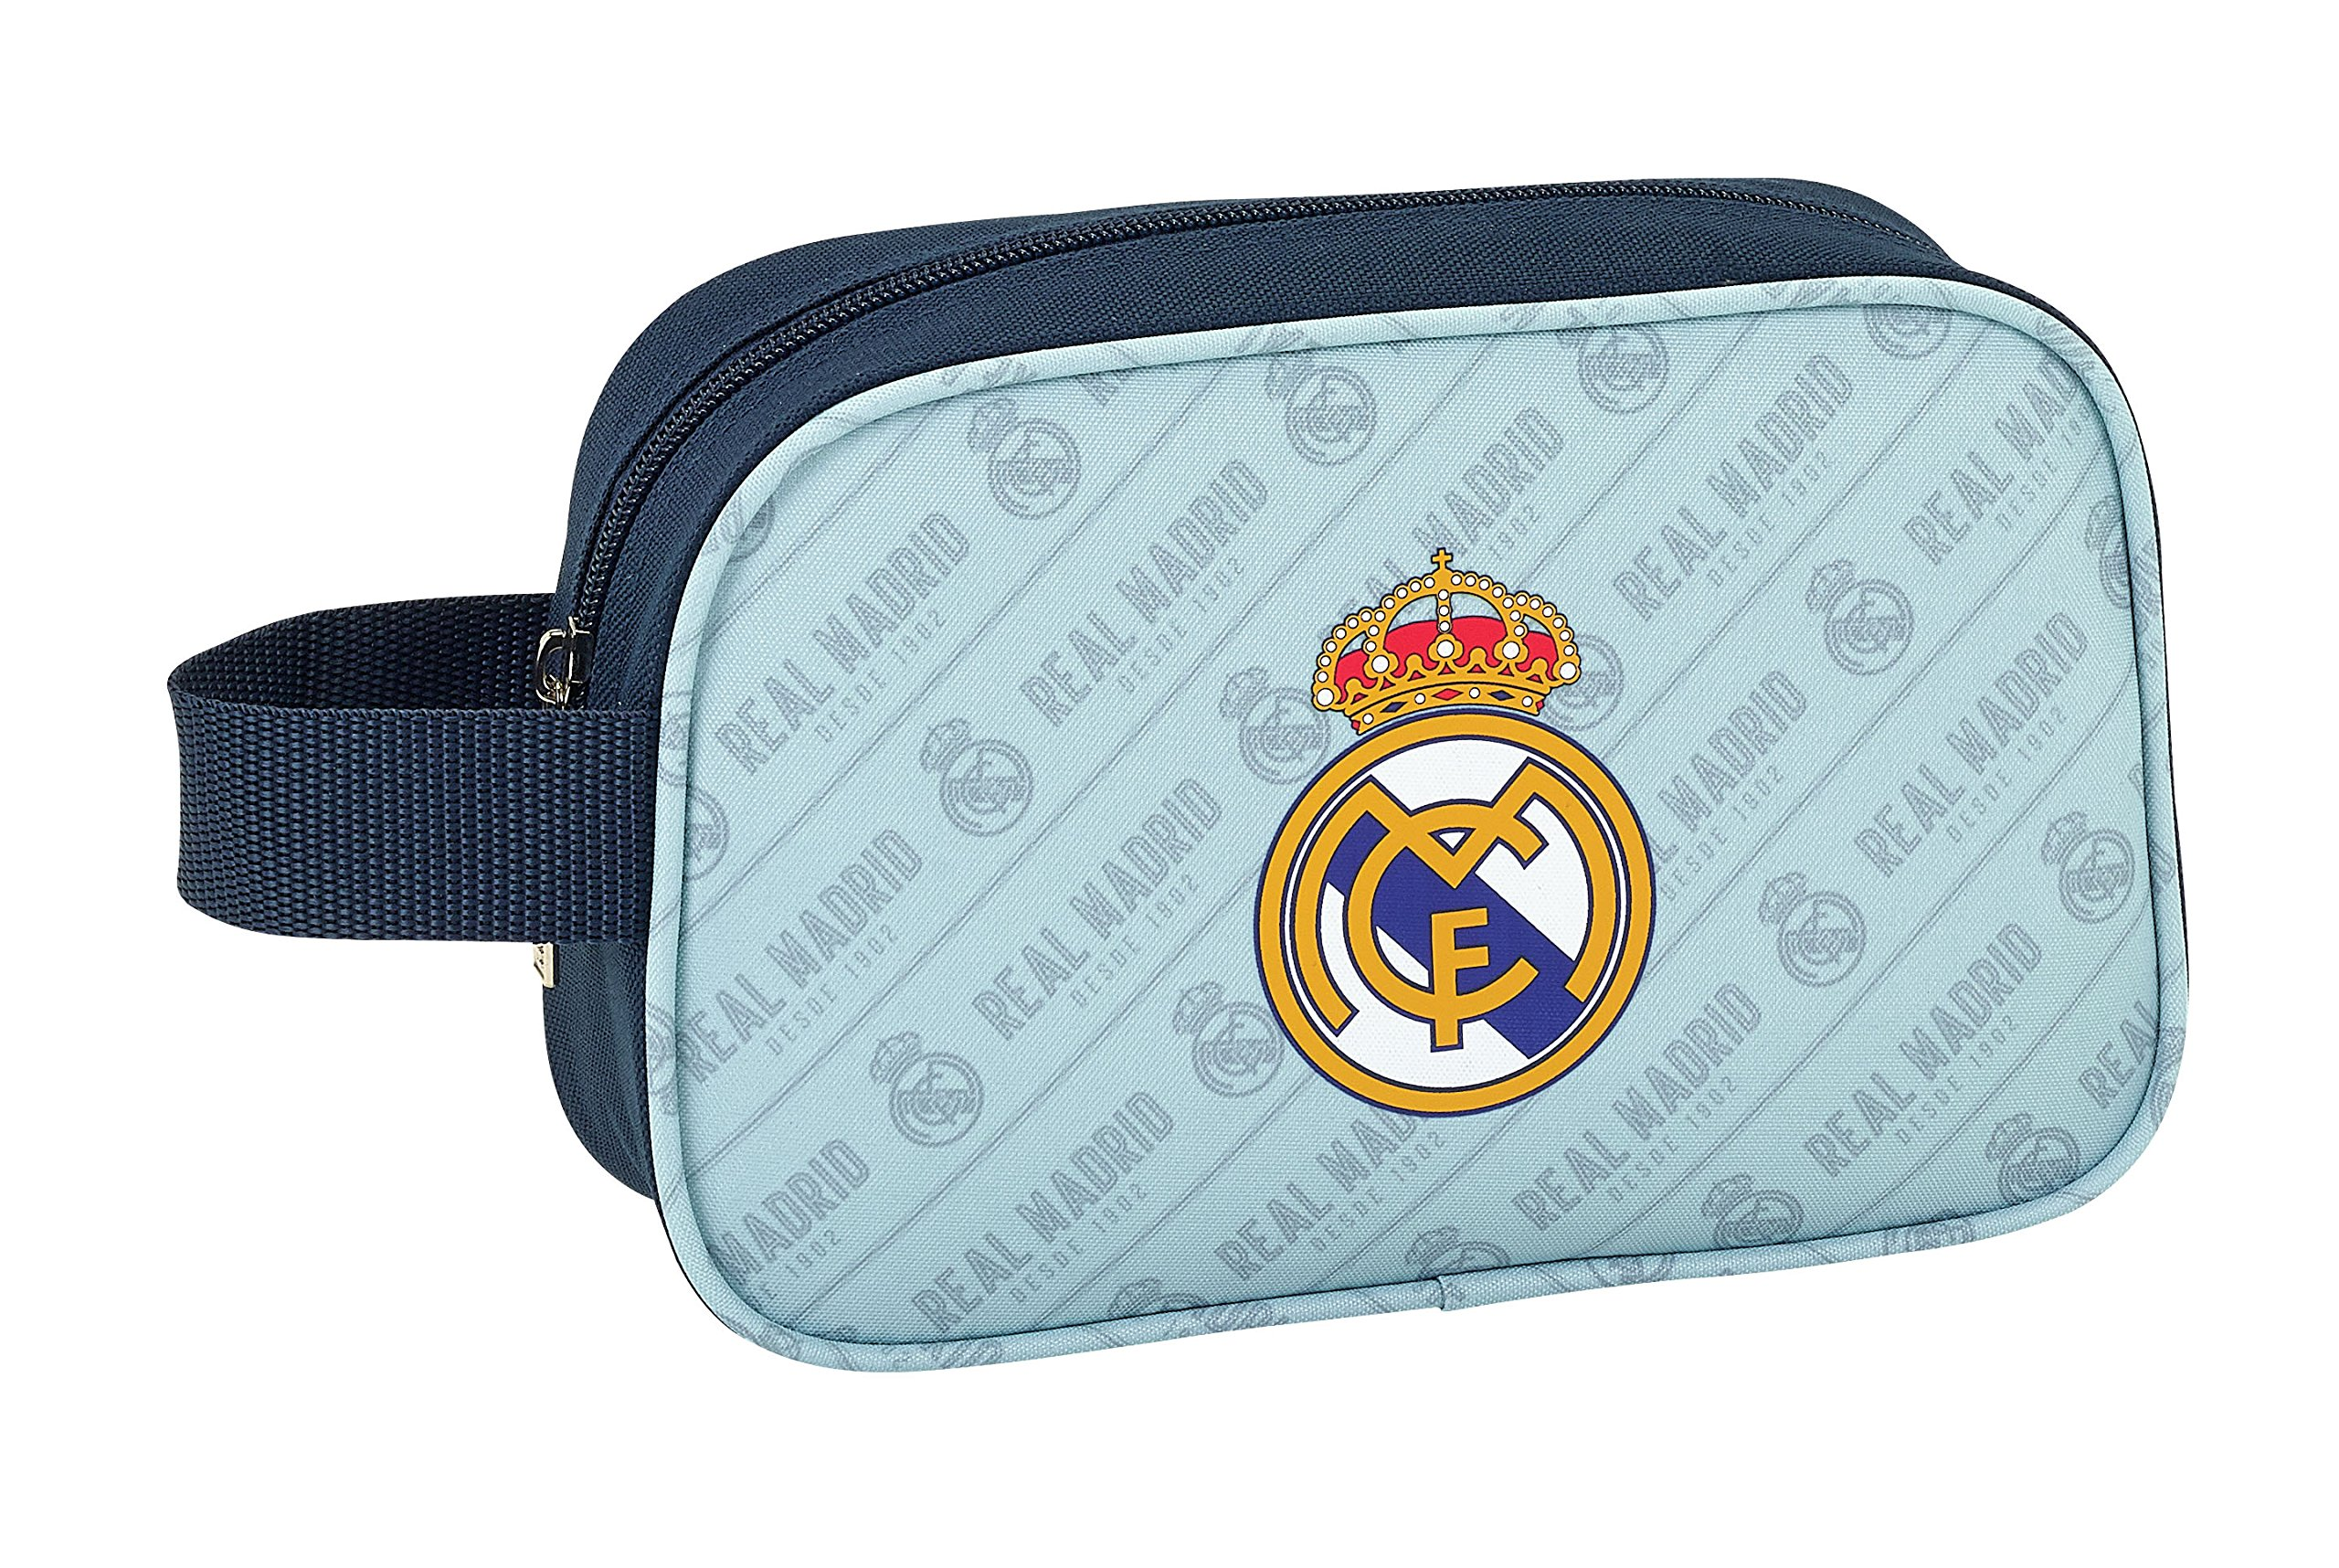 Safta Neceser Real Madrid Corporativa Oficial Pequeño 220x80x135mm